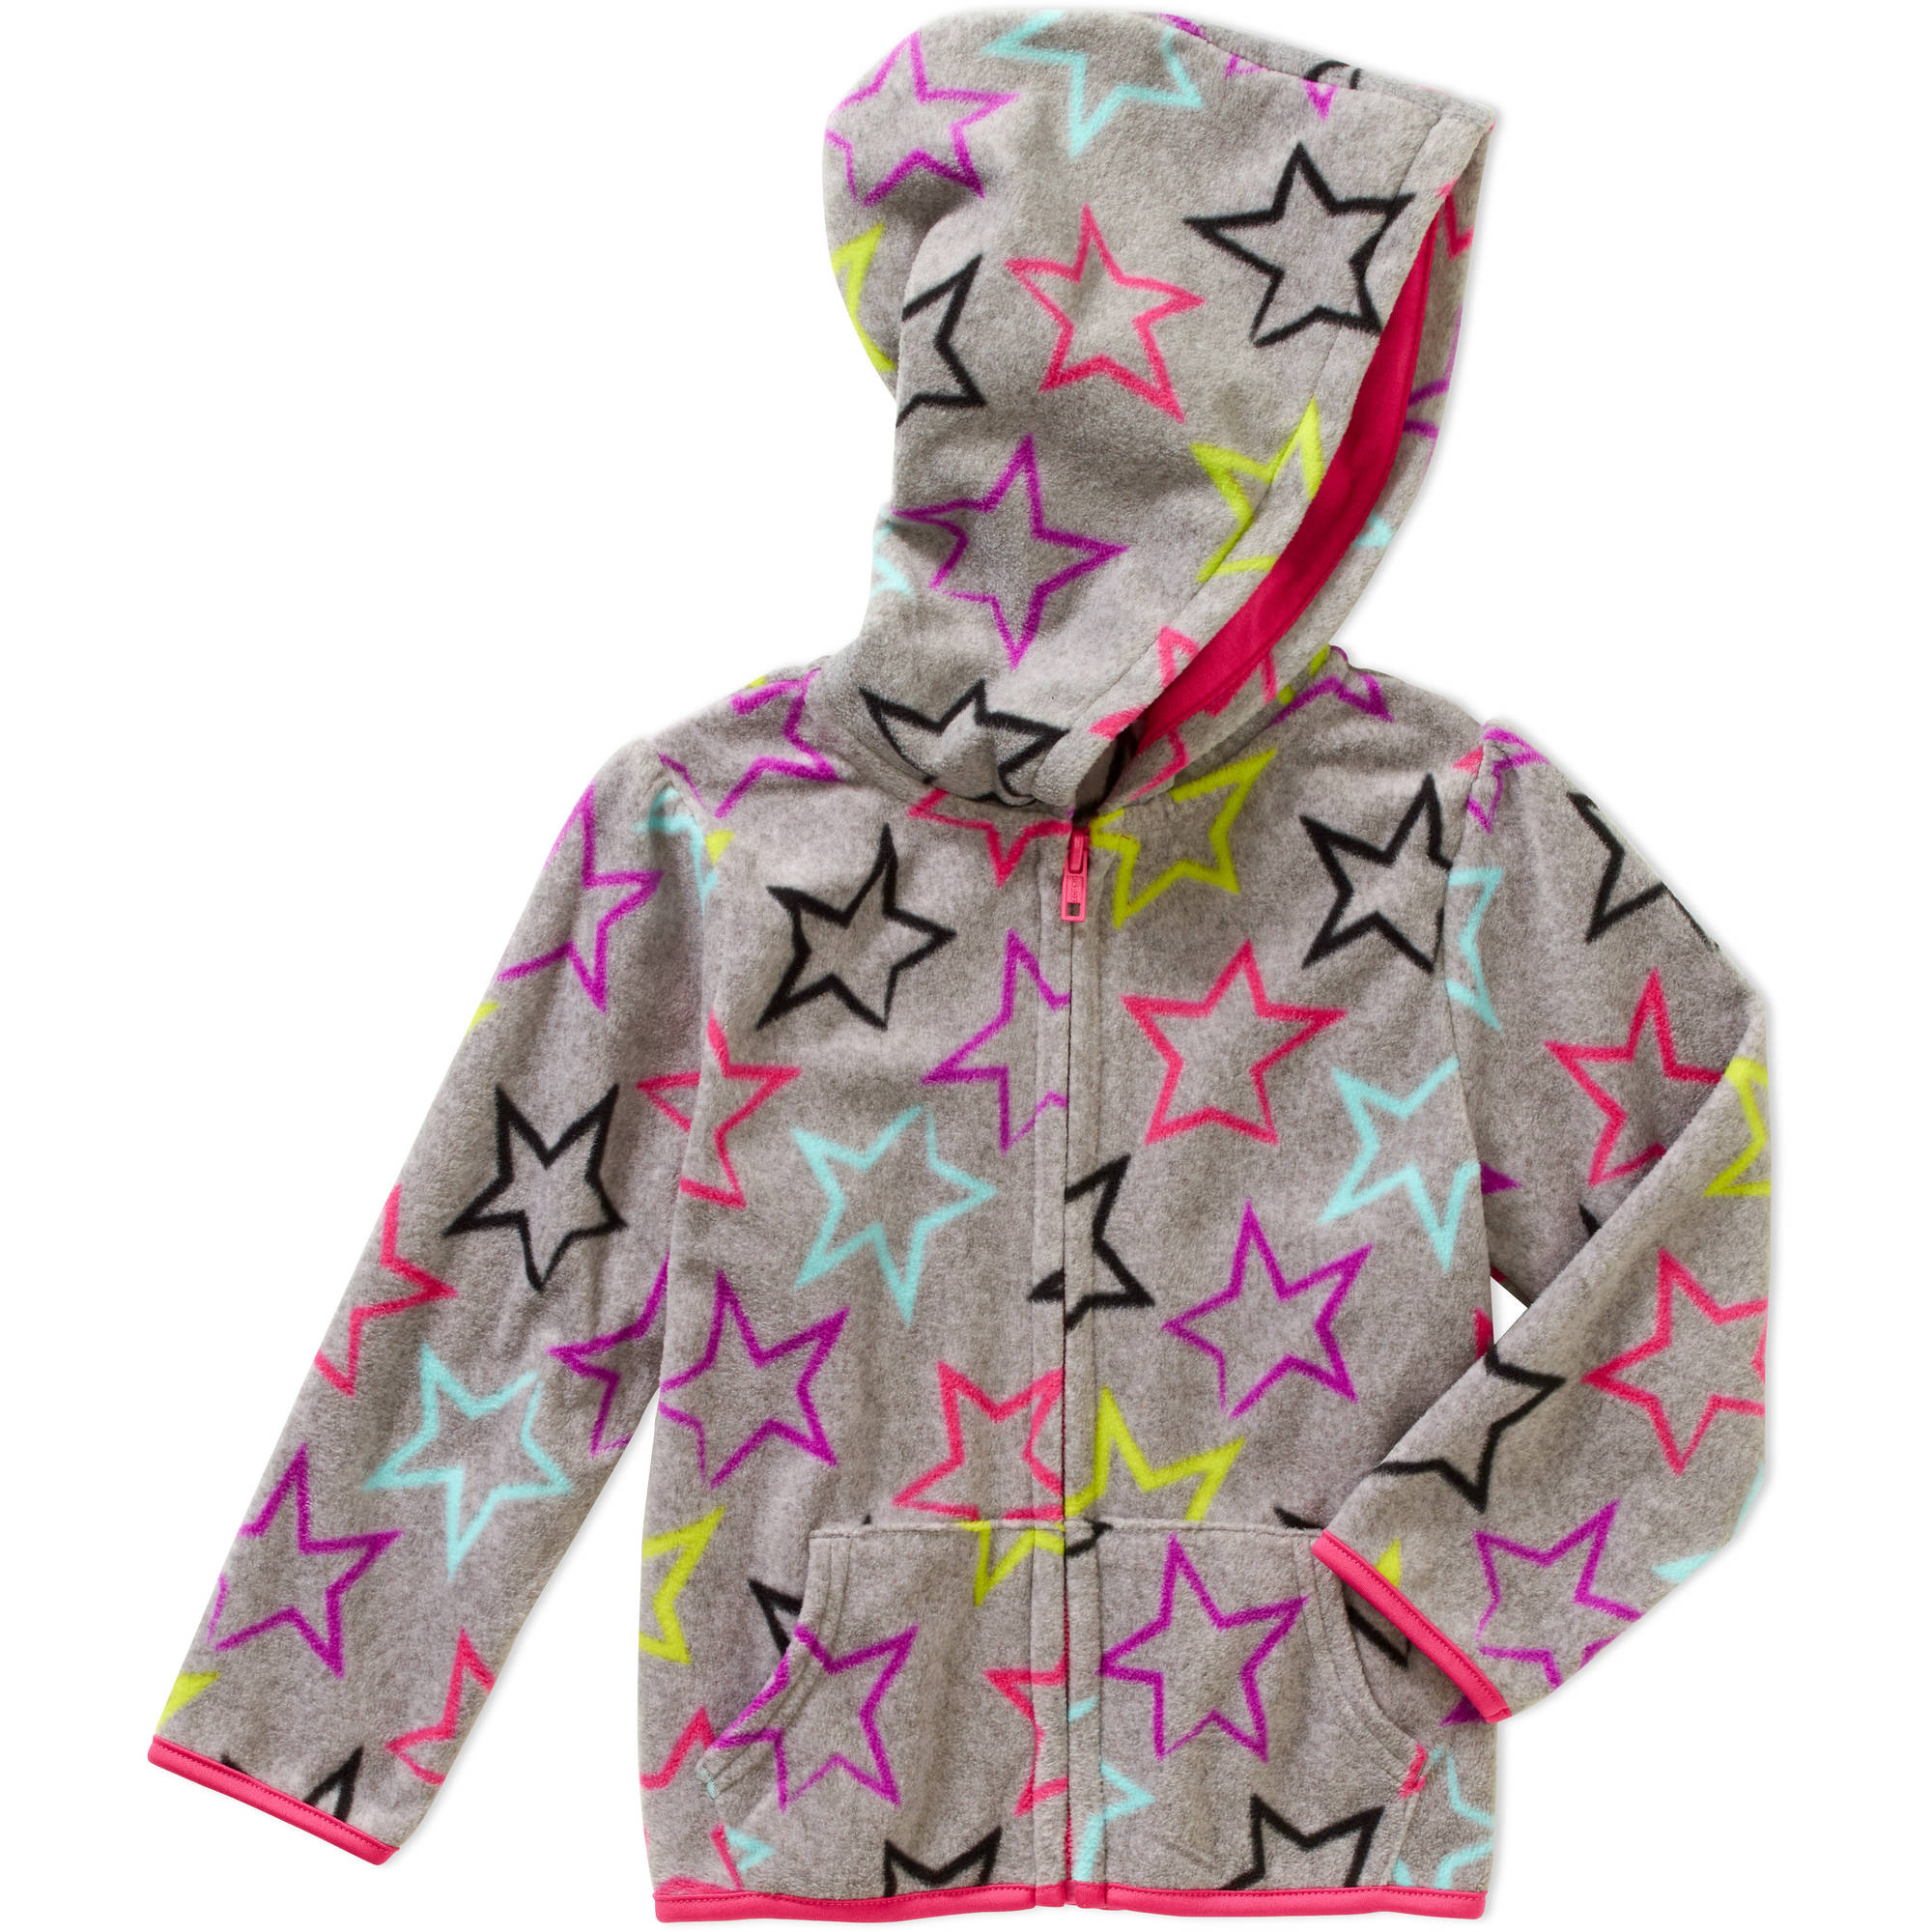 Garanimals Baby Toddler Girl Printed Fleece Hoodie Jacket